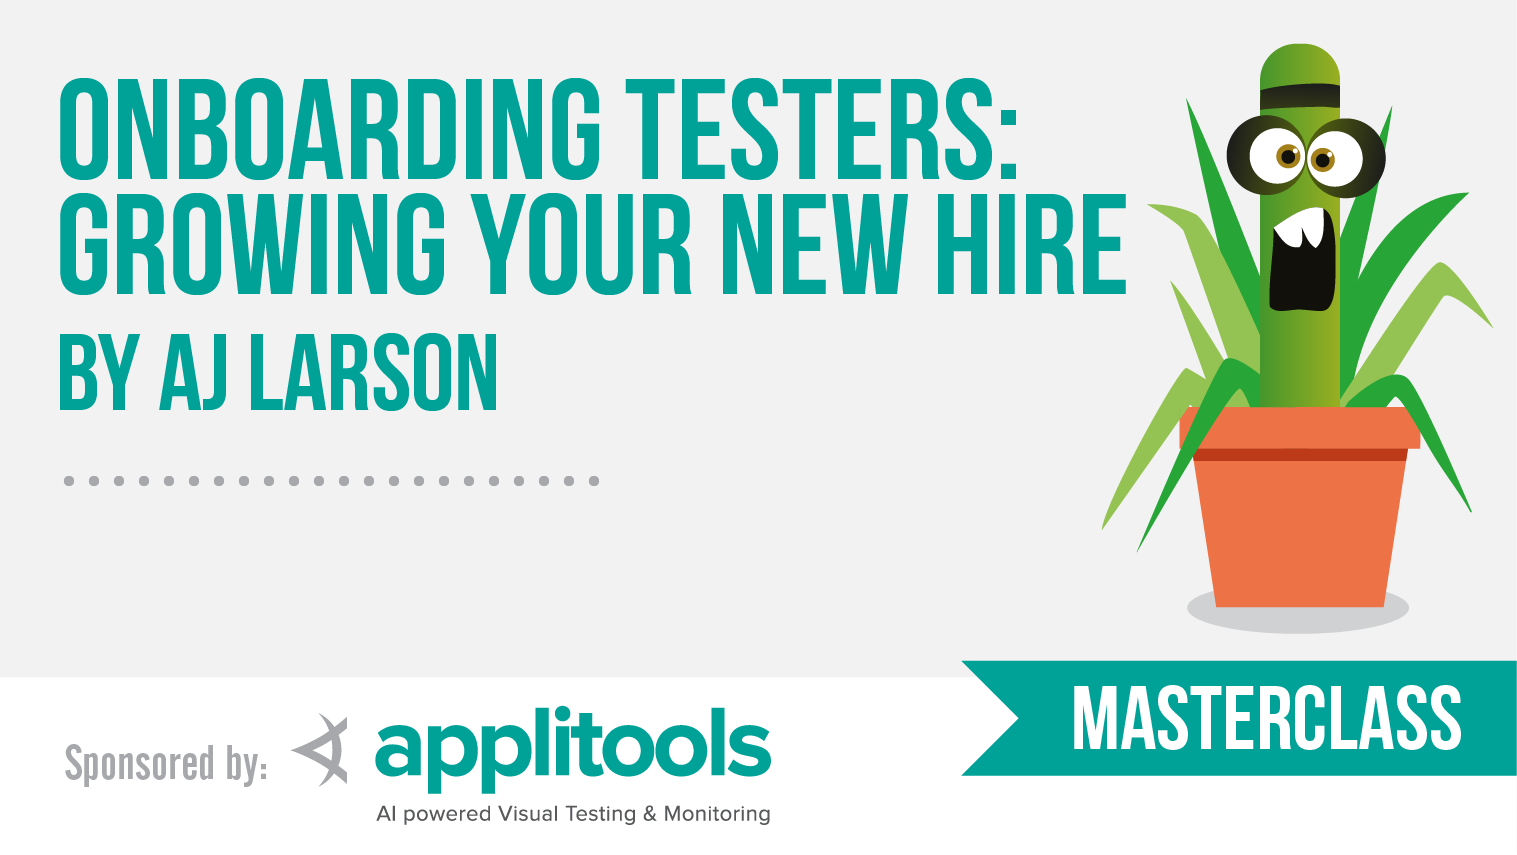 Masterclass: Onboarding testers: Growing your new hire with AJ Larson